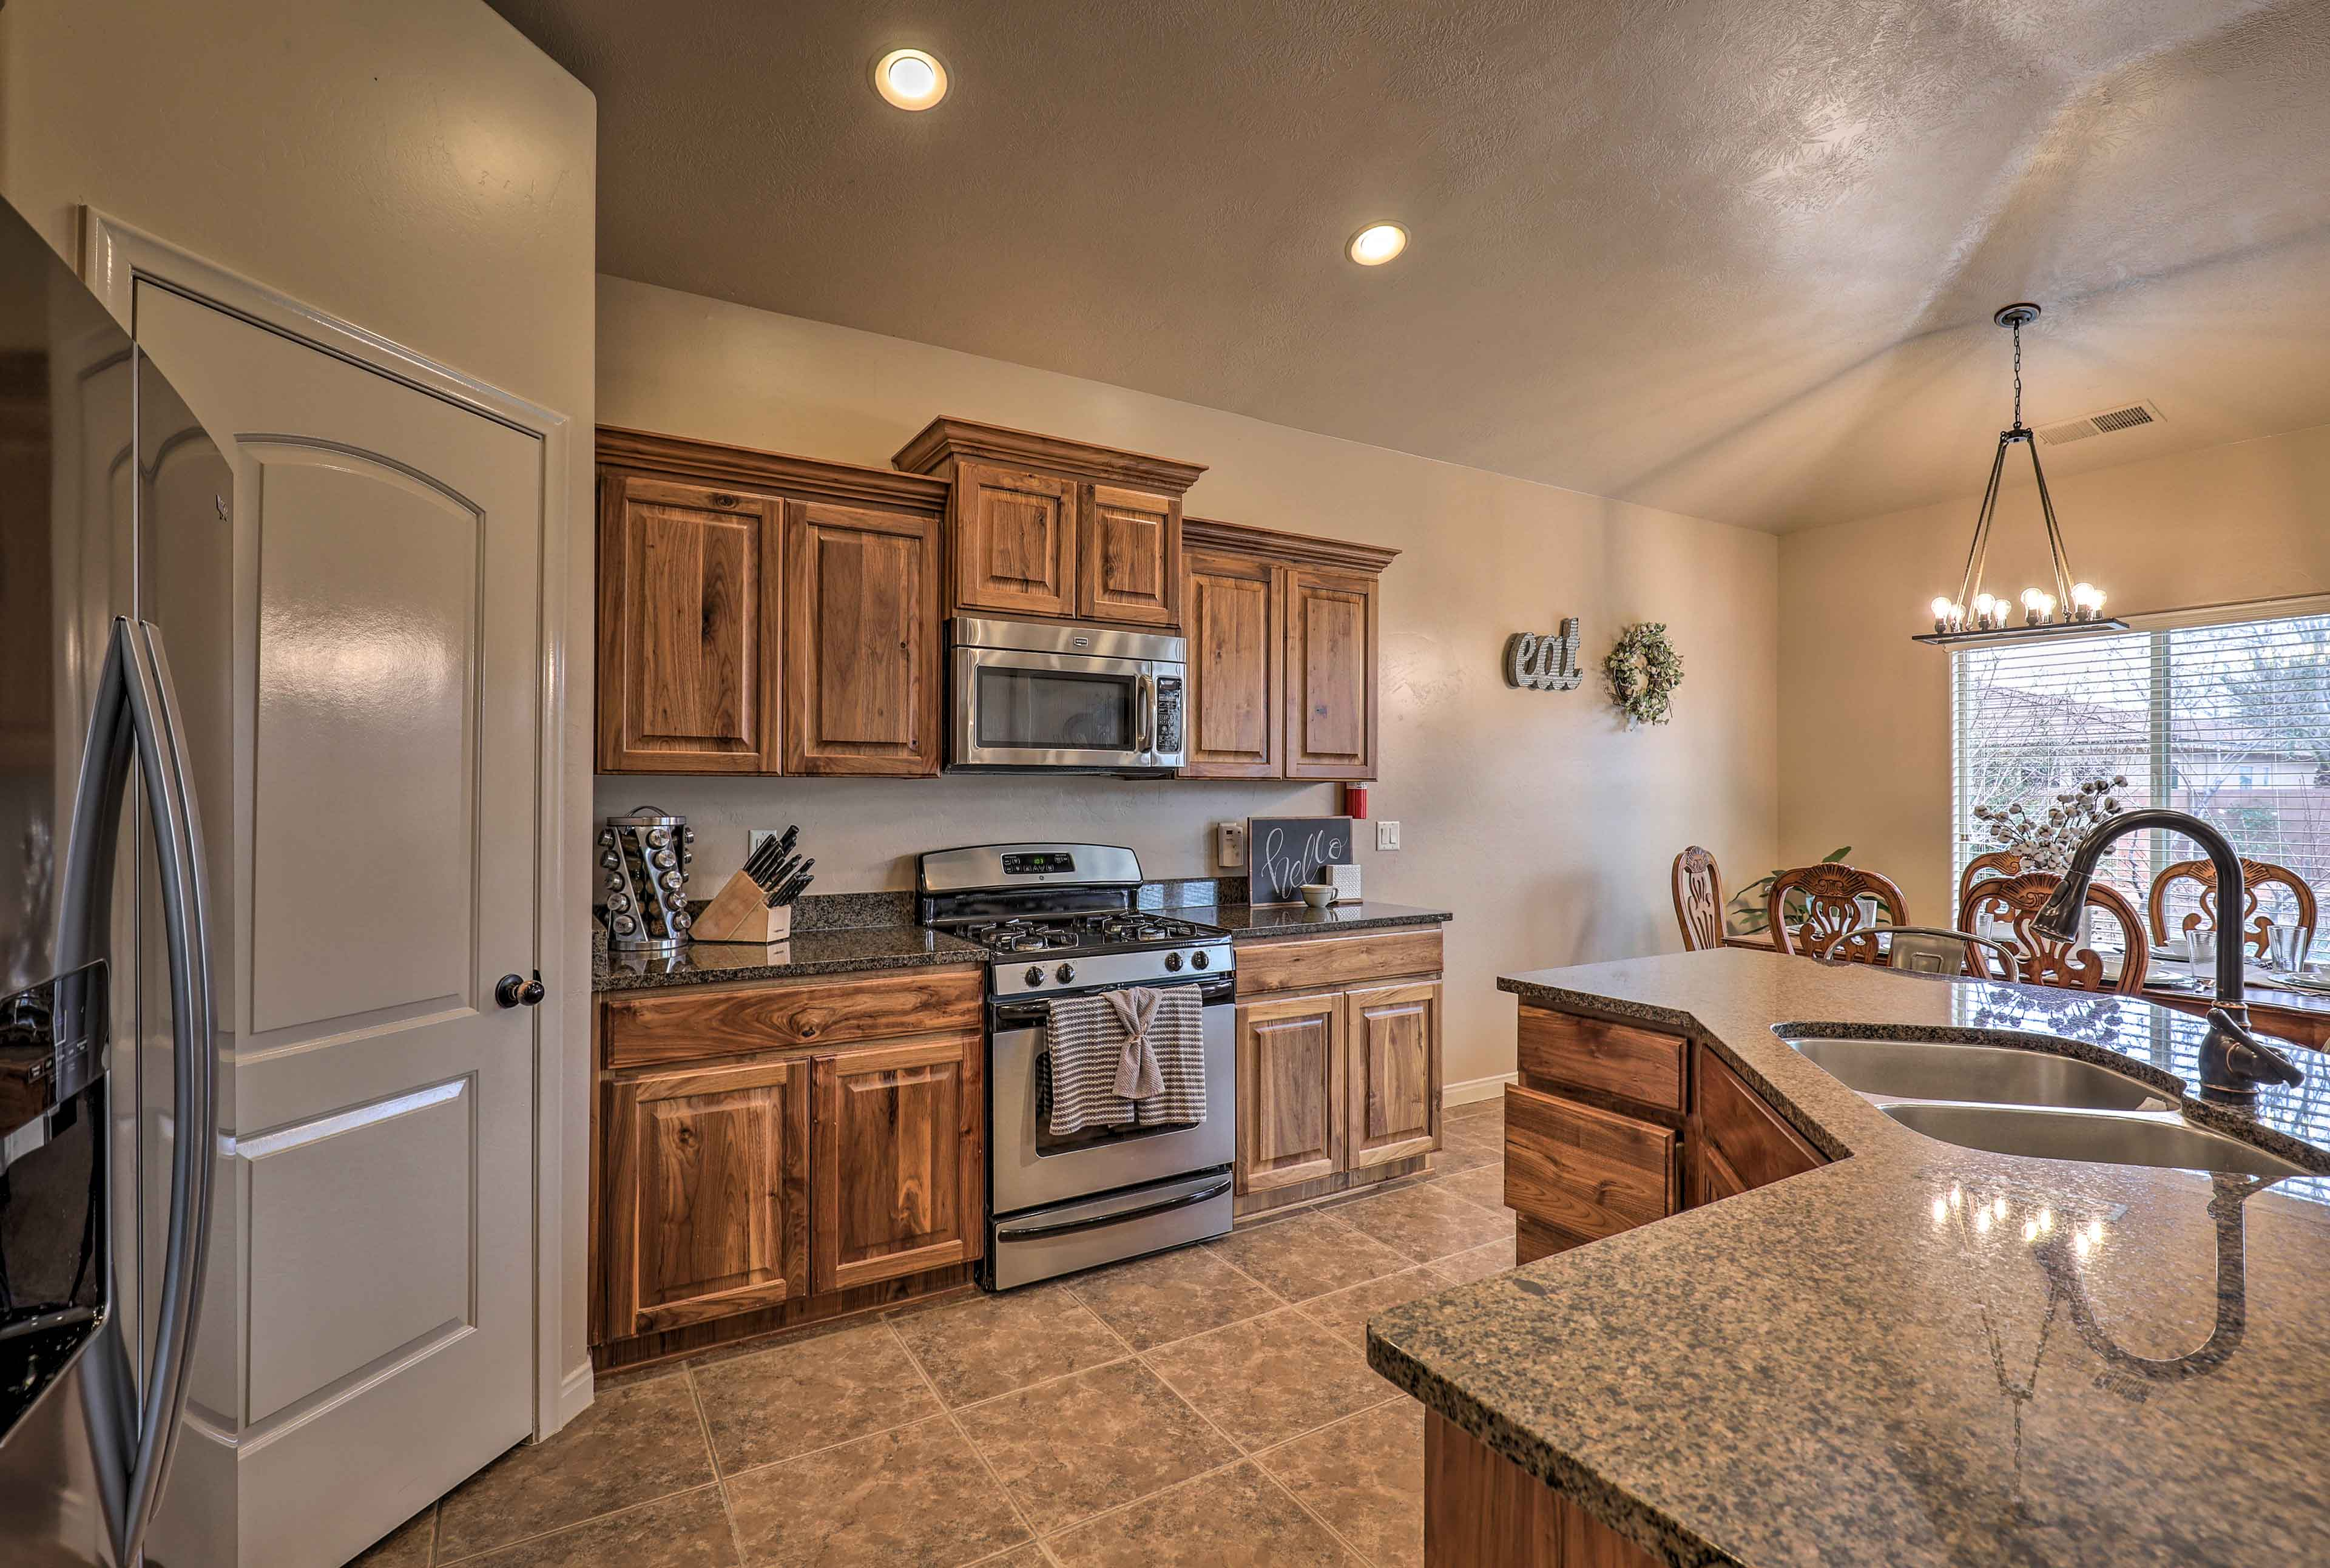 Cooking in this kitchen is effortless with stainless steel appliances!